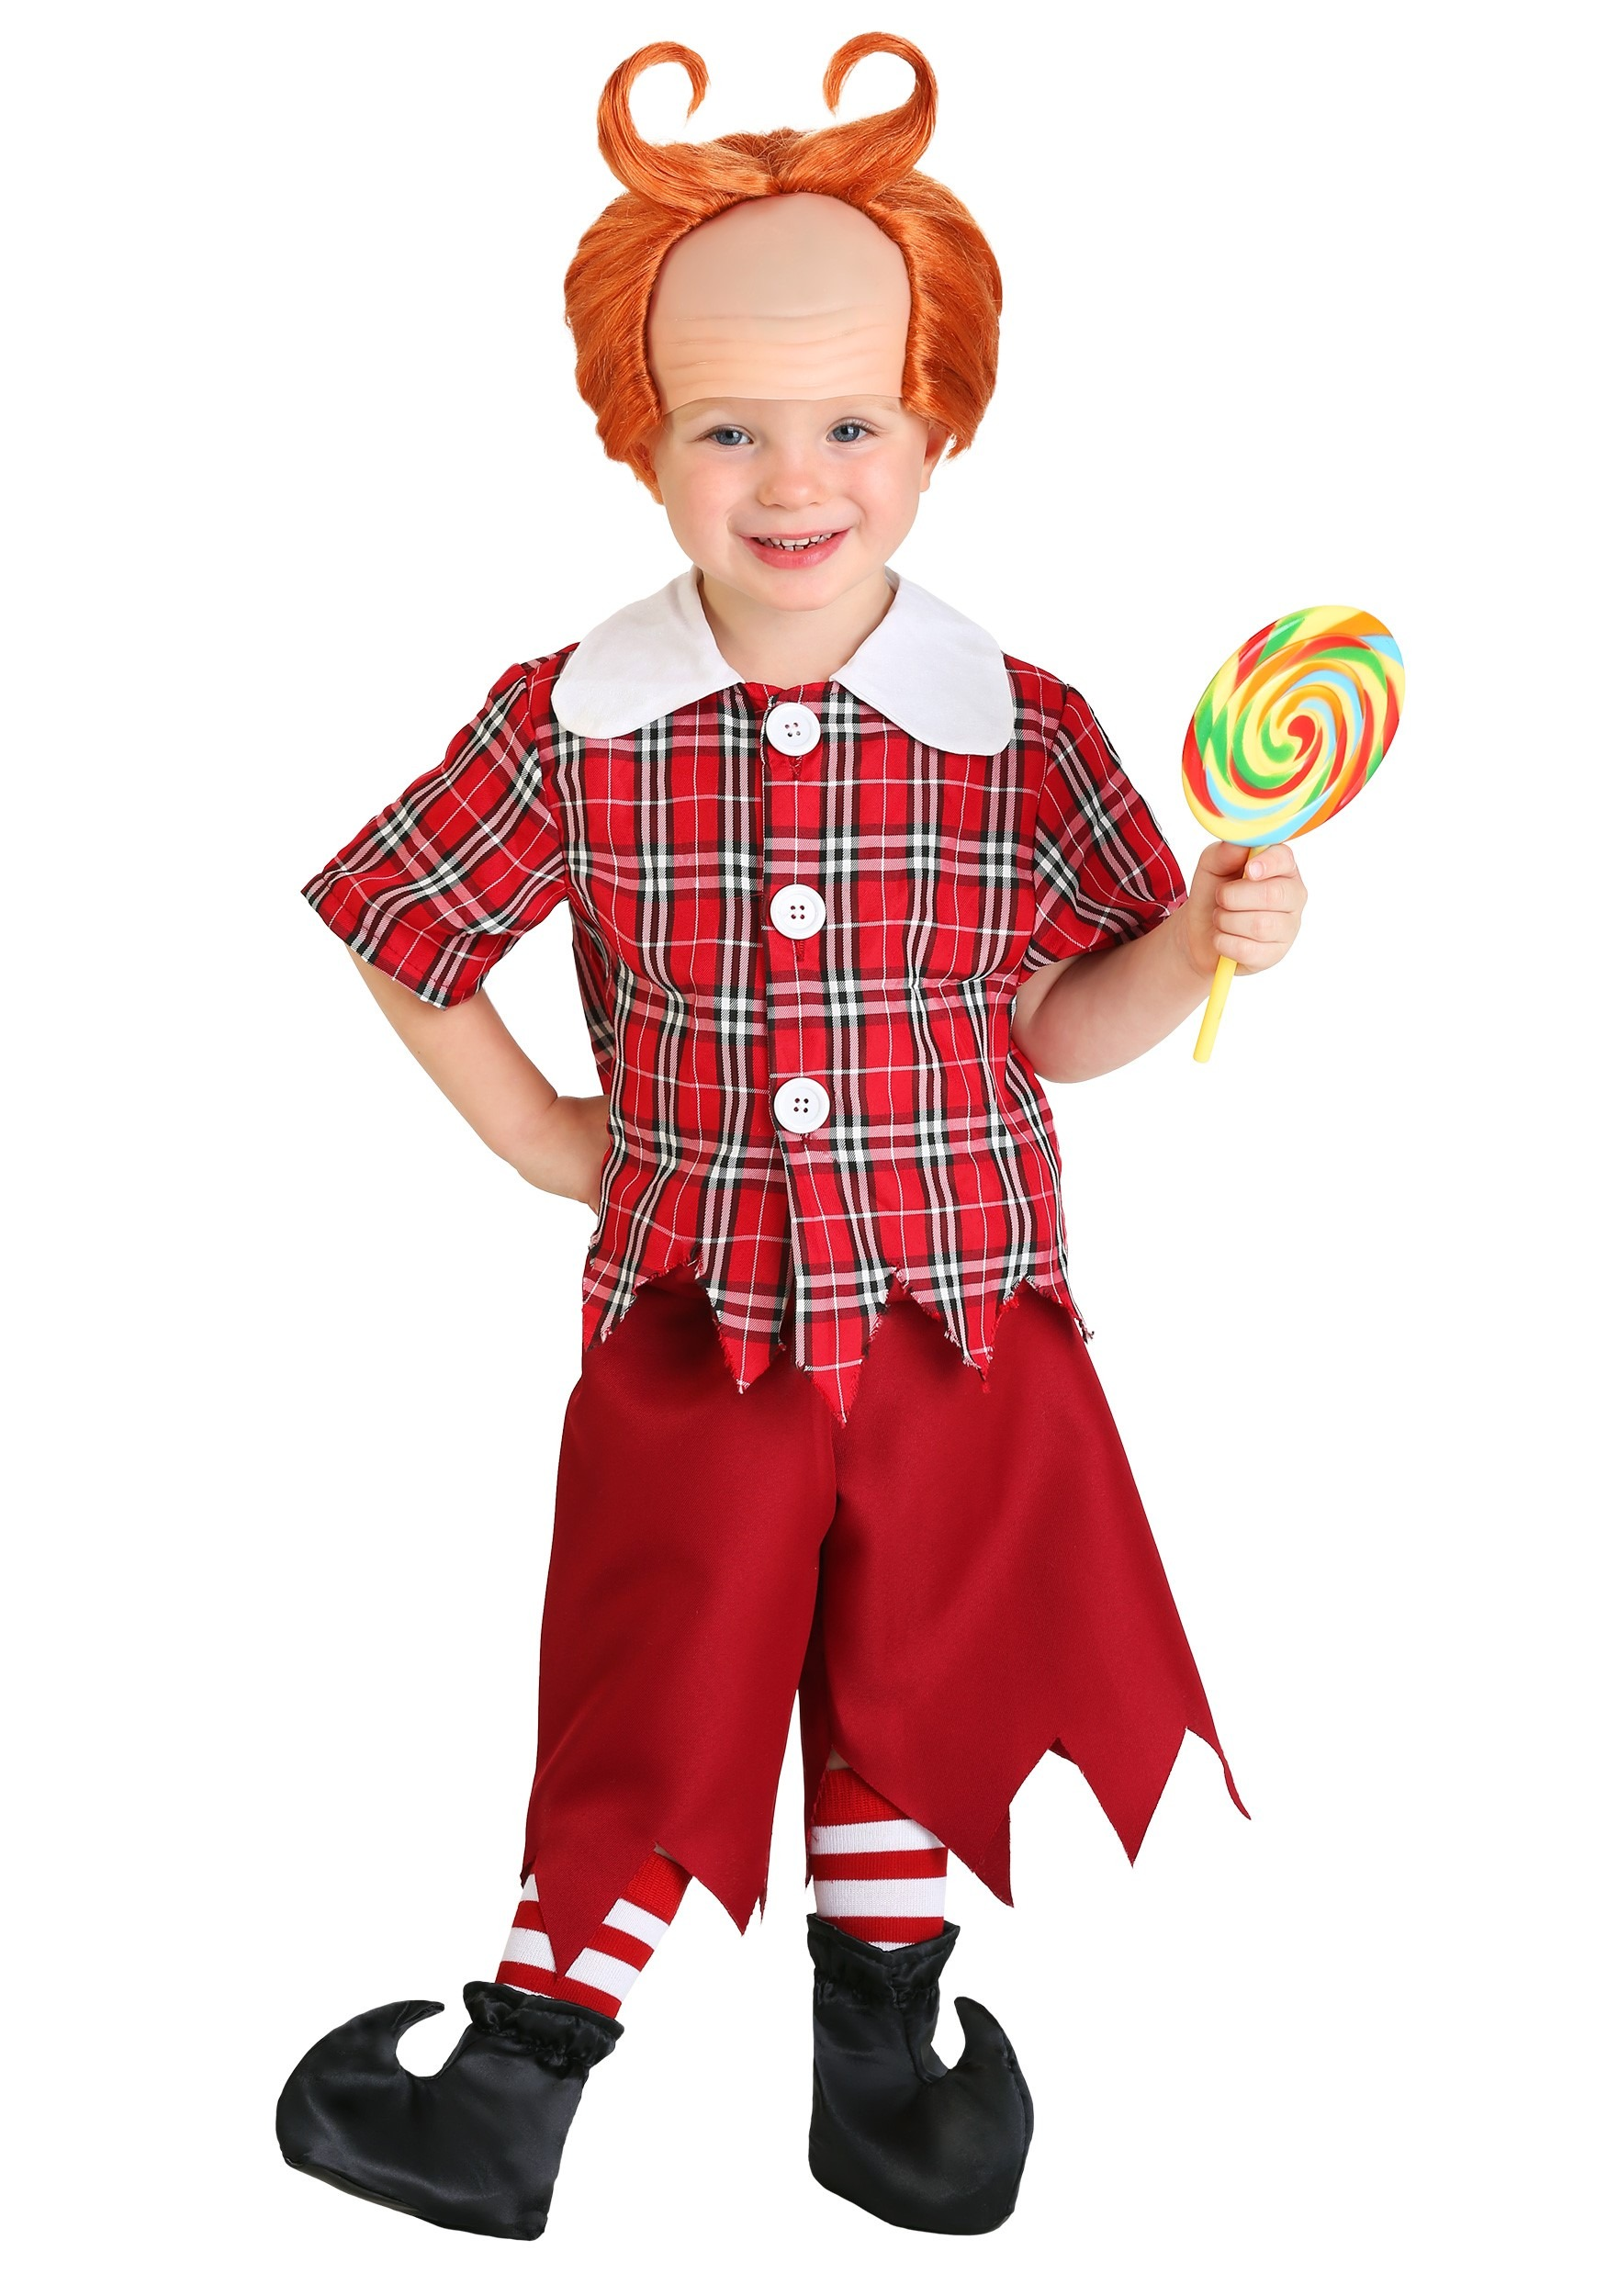 Toddler Little Munchkin Costume - Wizard of Oz Costumes for Toddlers